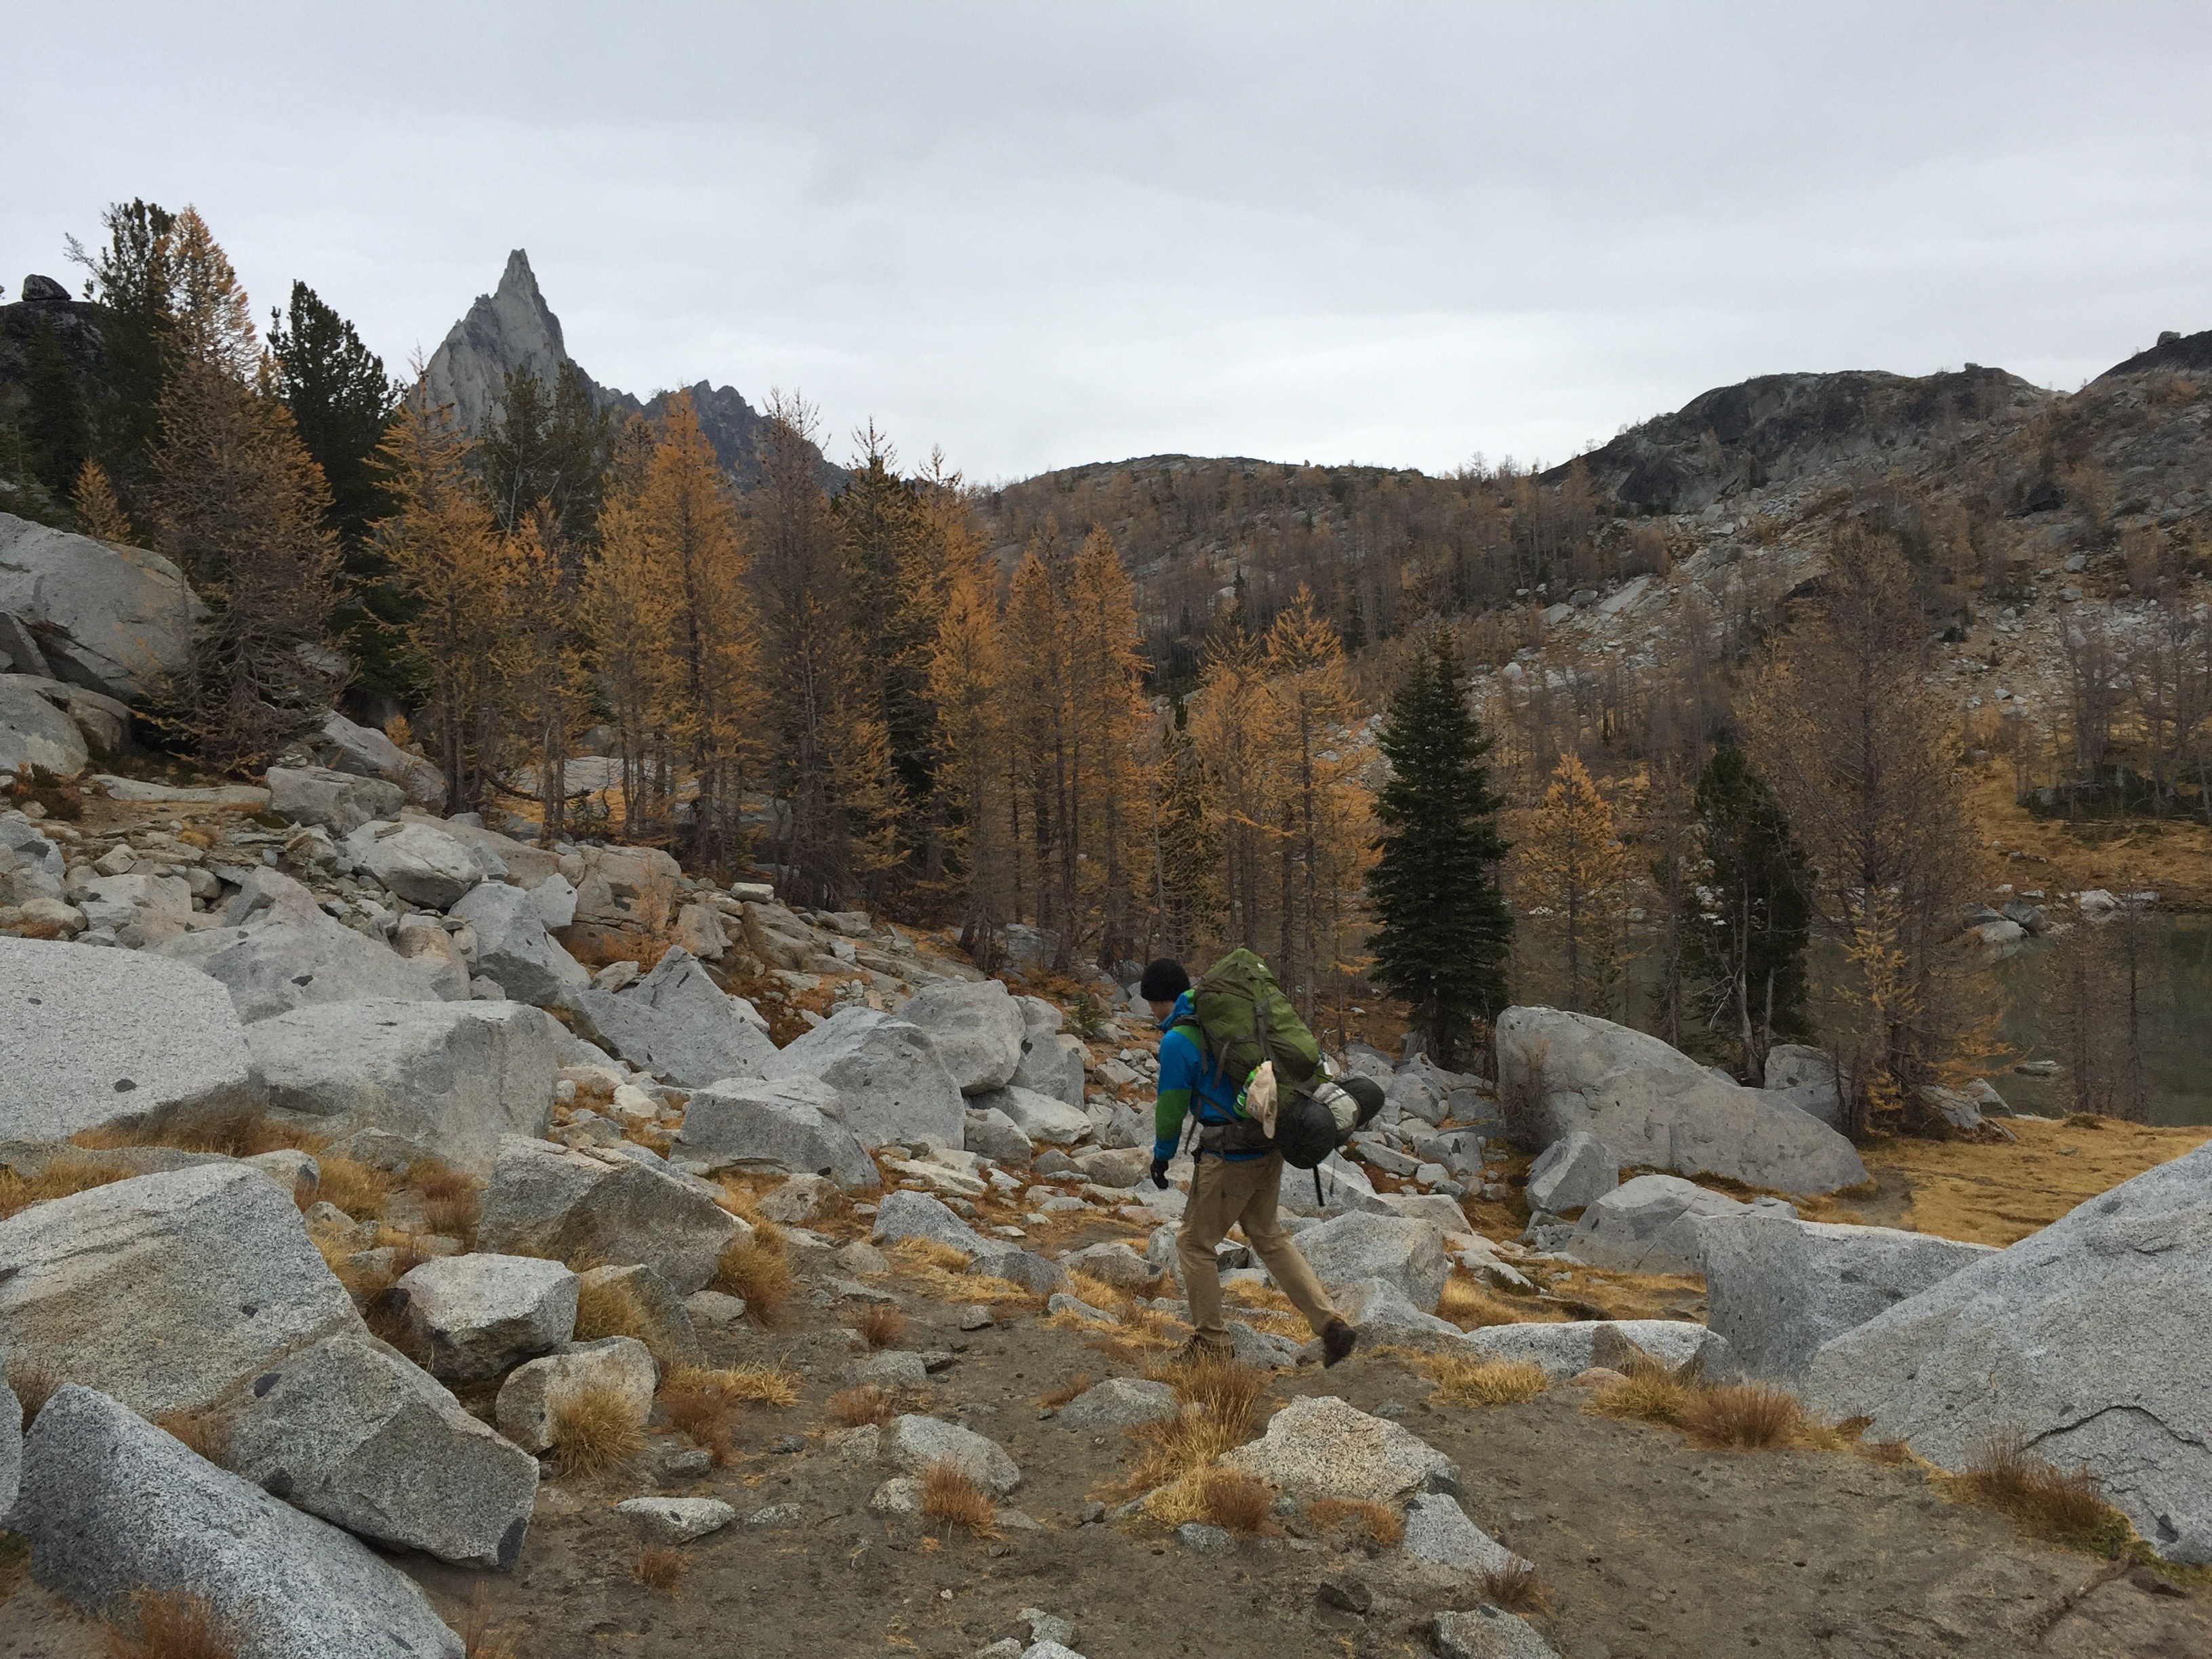 Hiking through the Upper Enchantments in the Fall.